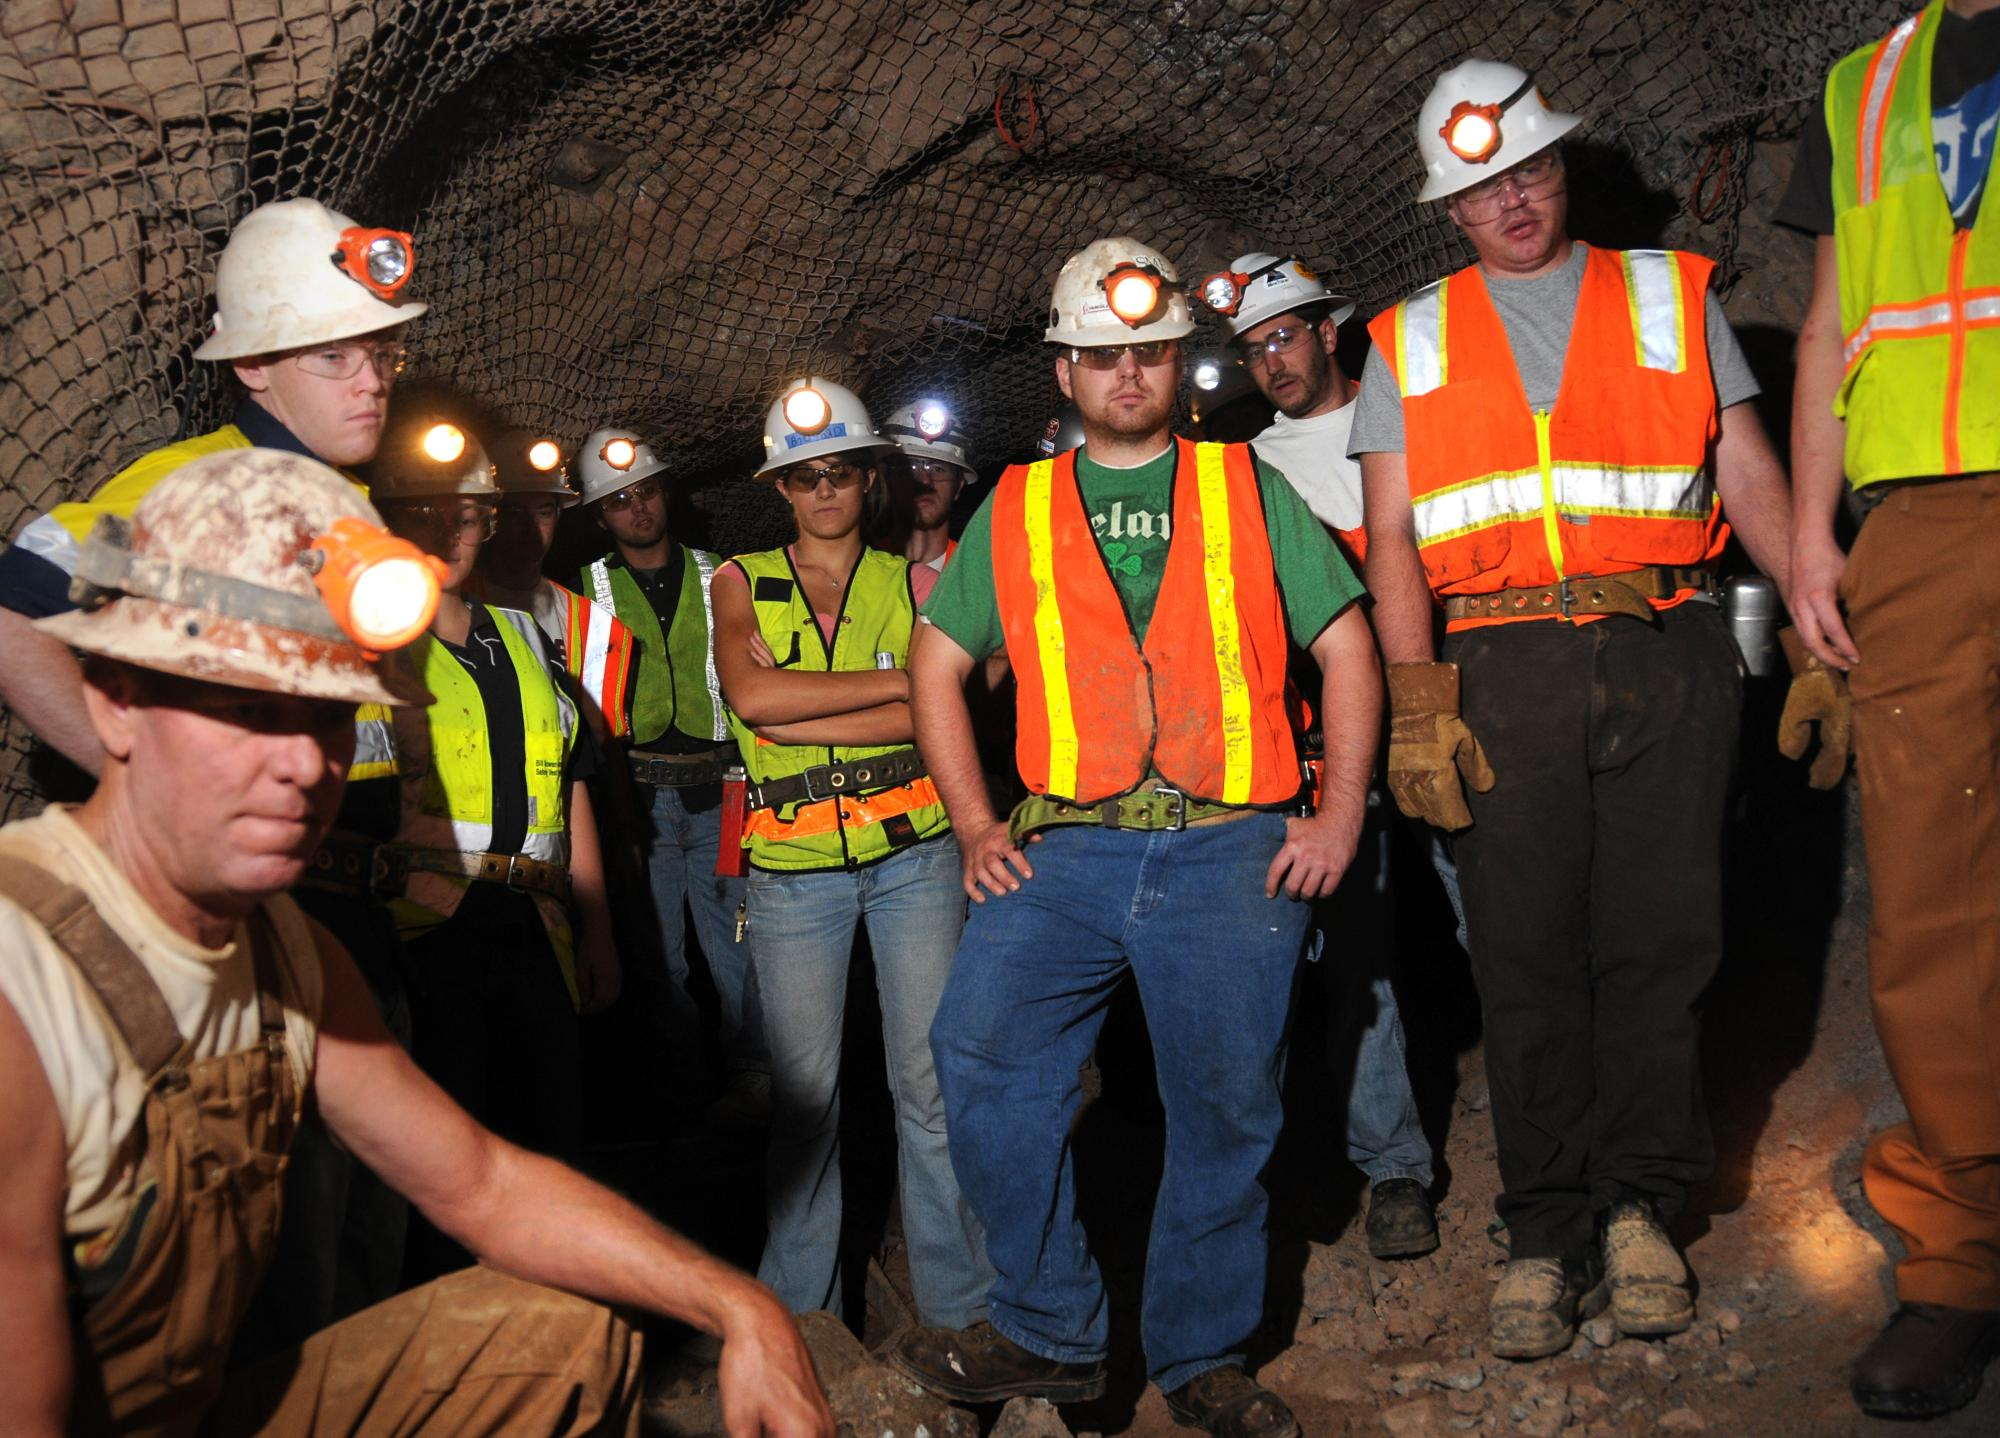 More and more women are joining the mining industry - and finding much opportunity